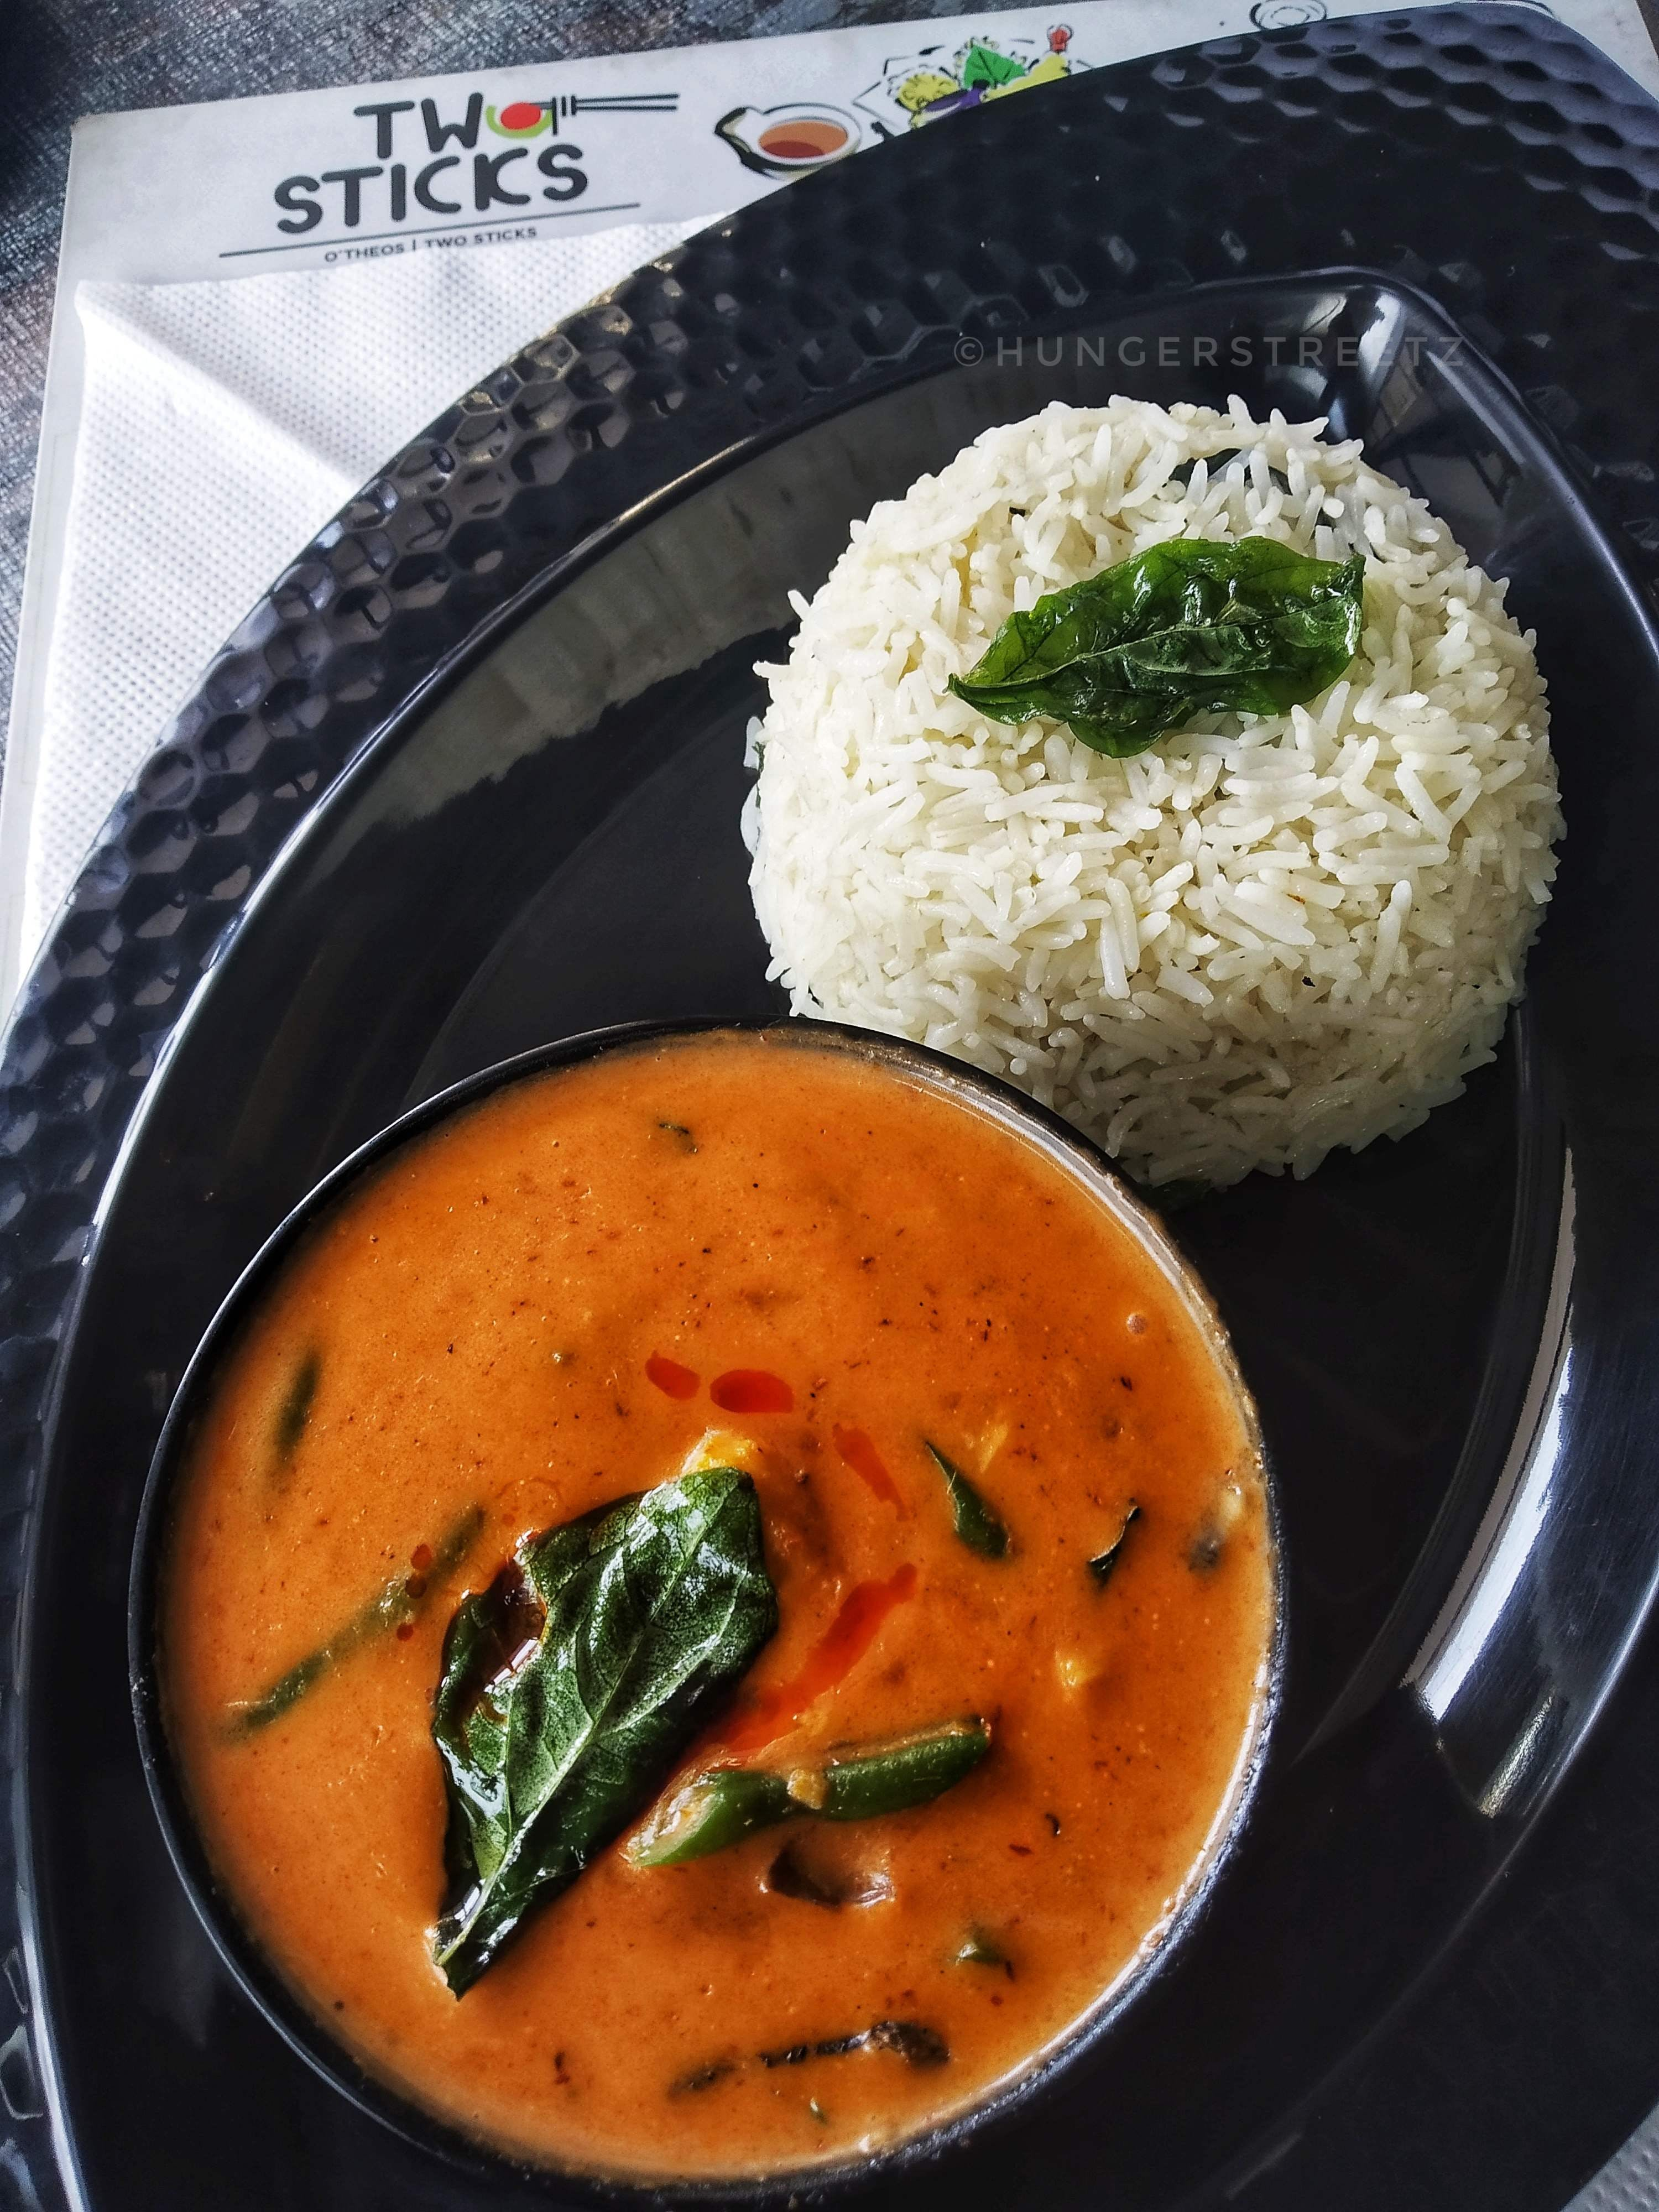 Dish,Food,Cuisine,Red curry,Ingredient,Curry,Steamed rice,White rice,Dal,Lunch